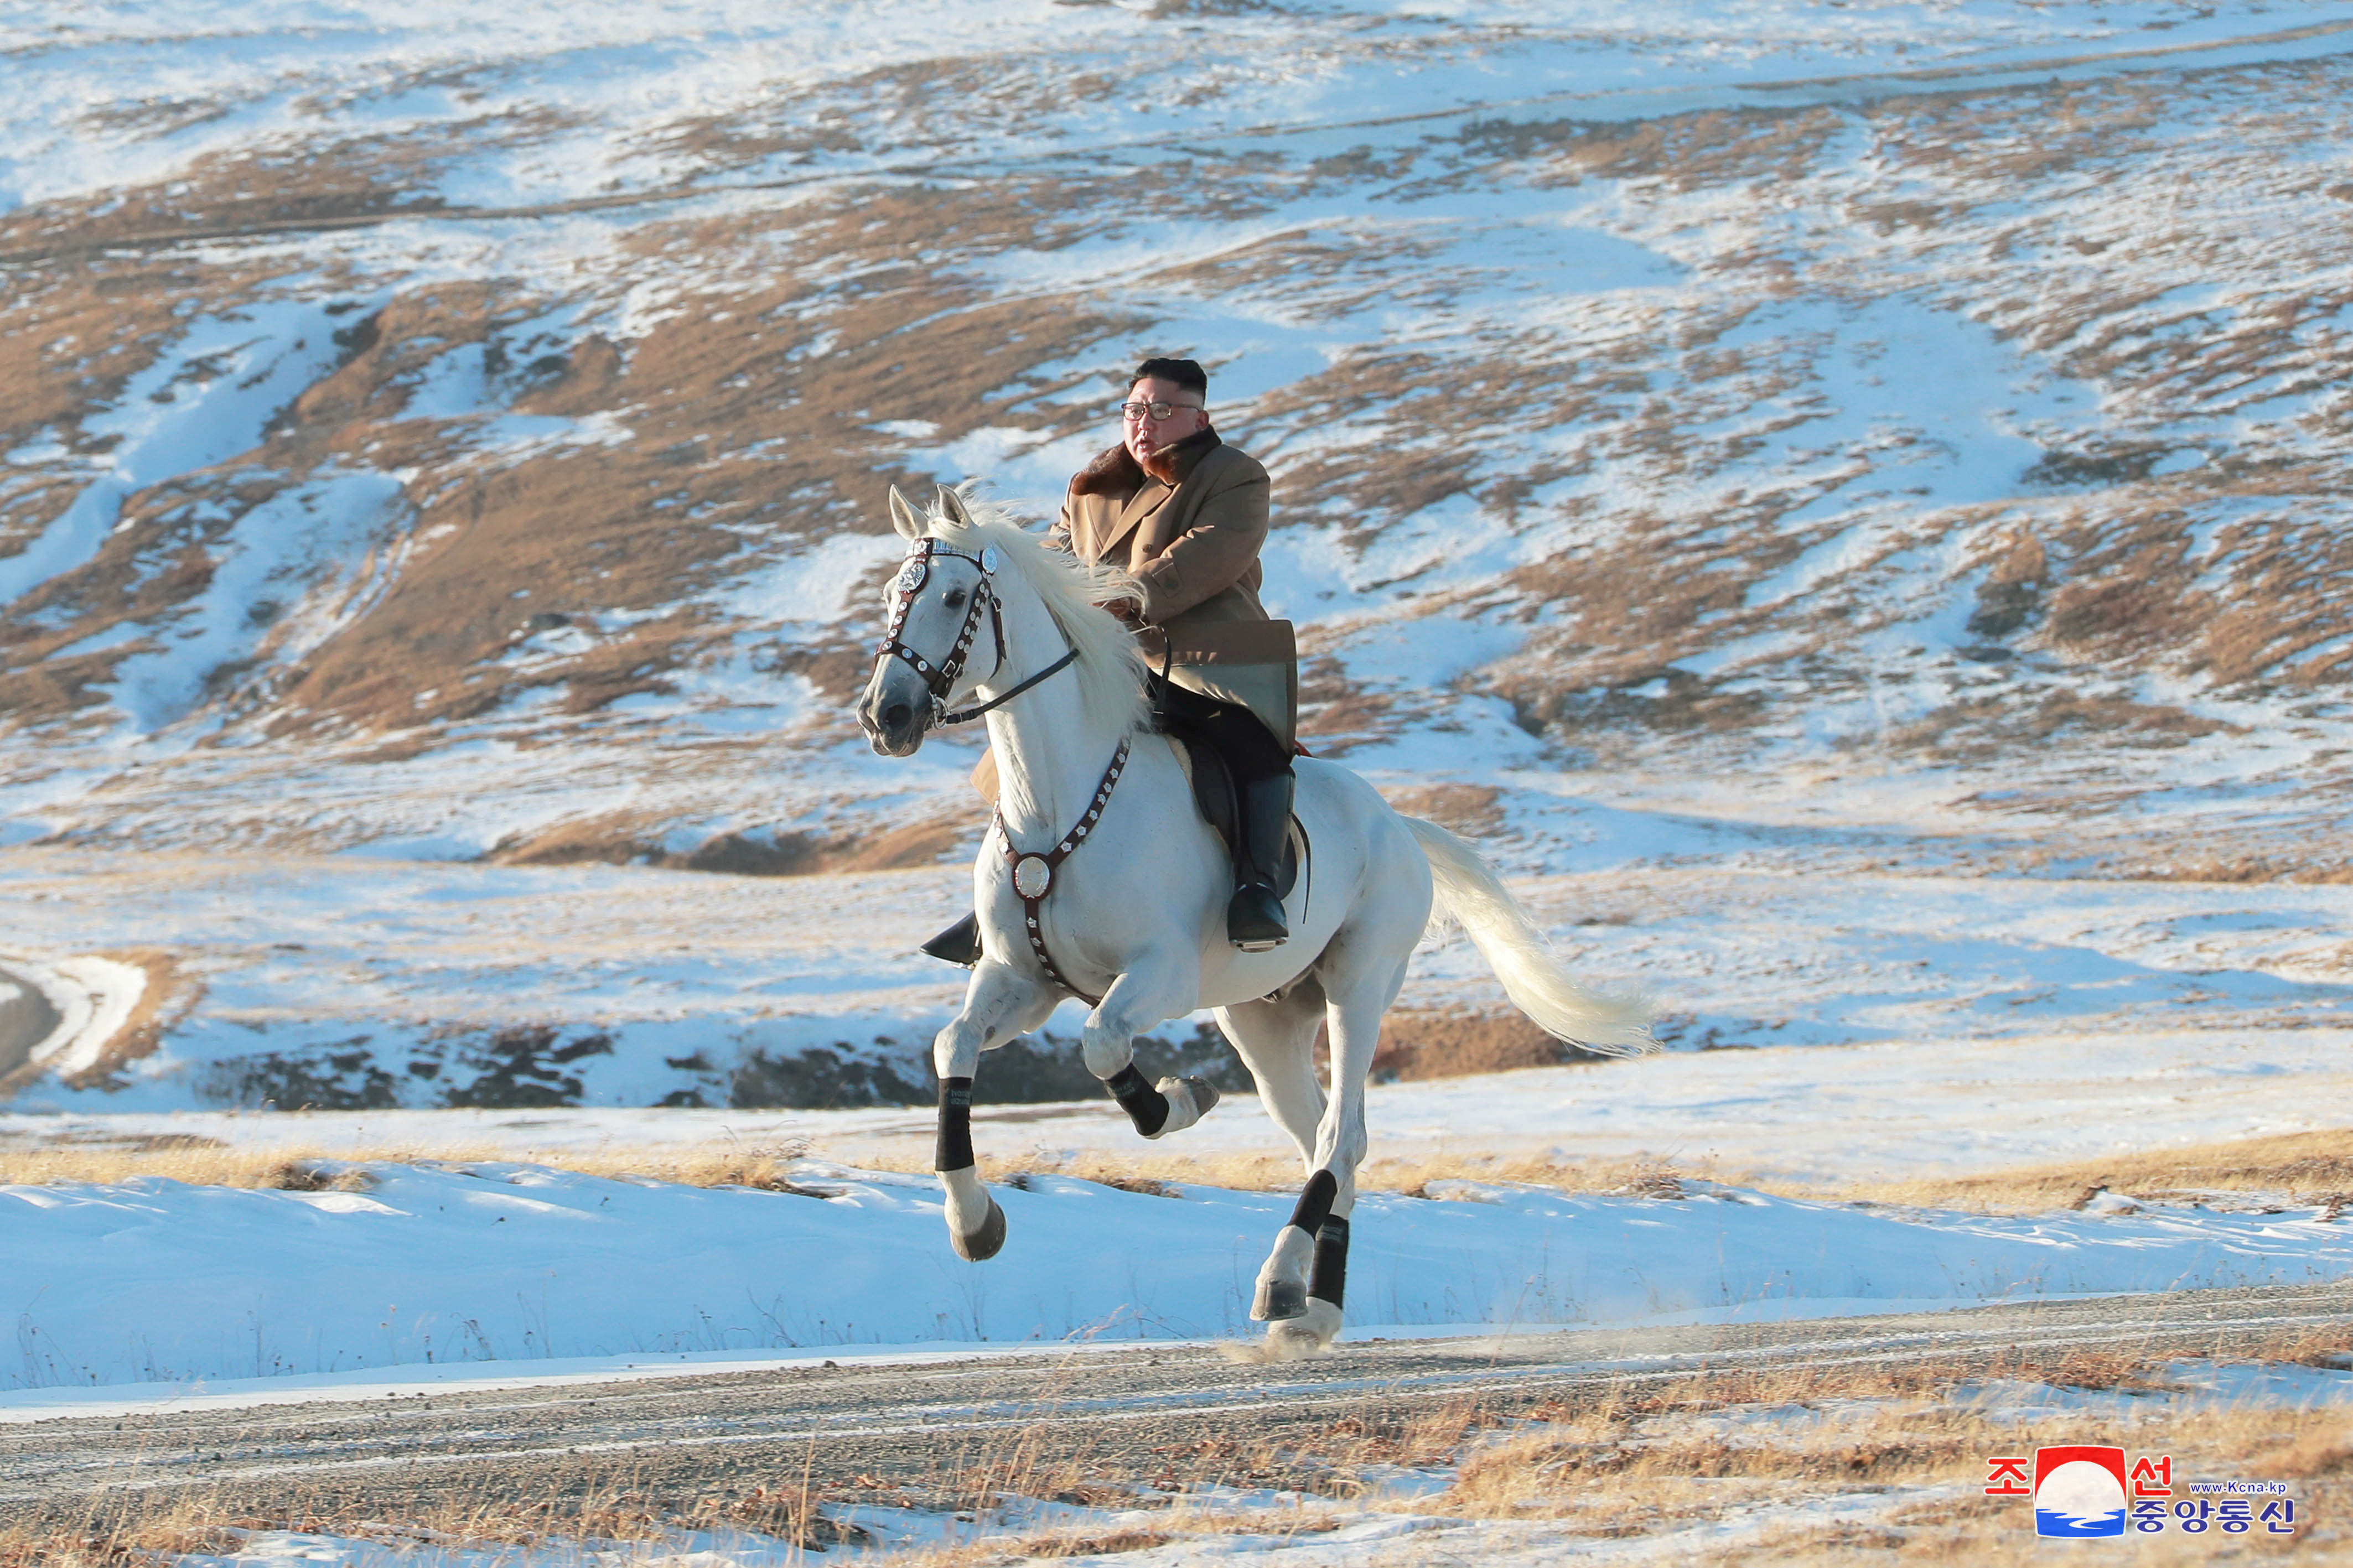 North Korean leader Kim Jong Un rides a horse during snowfall in Mount Paektu in this image released by North Korea's Korean Central News Agency (KCNA) on October 16, 2019. KCNA via REUTERS ATTENTION EDITORS - THIS IMAGE WAS PROVIDED BY A THIRD PARTY. REUTERS IS UNABLE TO INDEPENDENTLY VERIFY THIS IMAGE. NO THIRD PARTY SALES. SOUTH KOREA OUT.